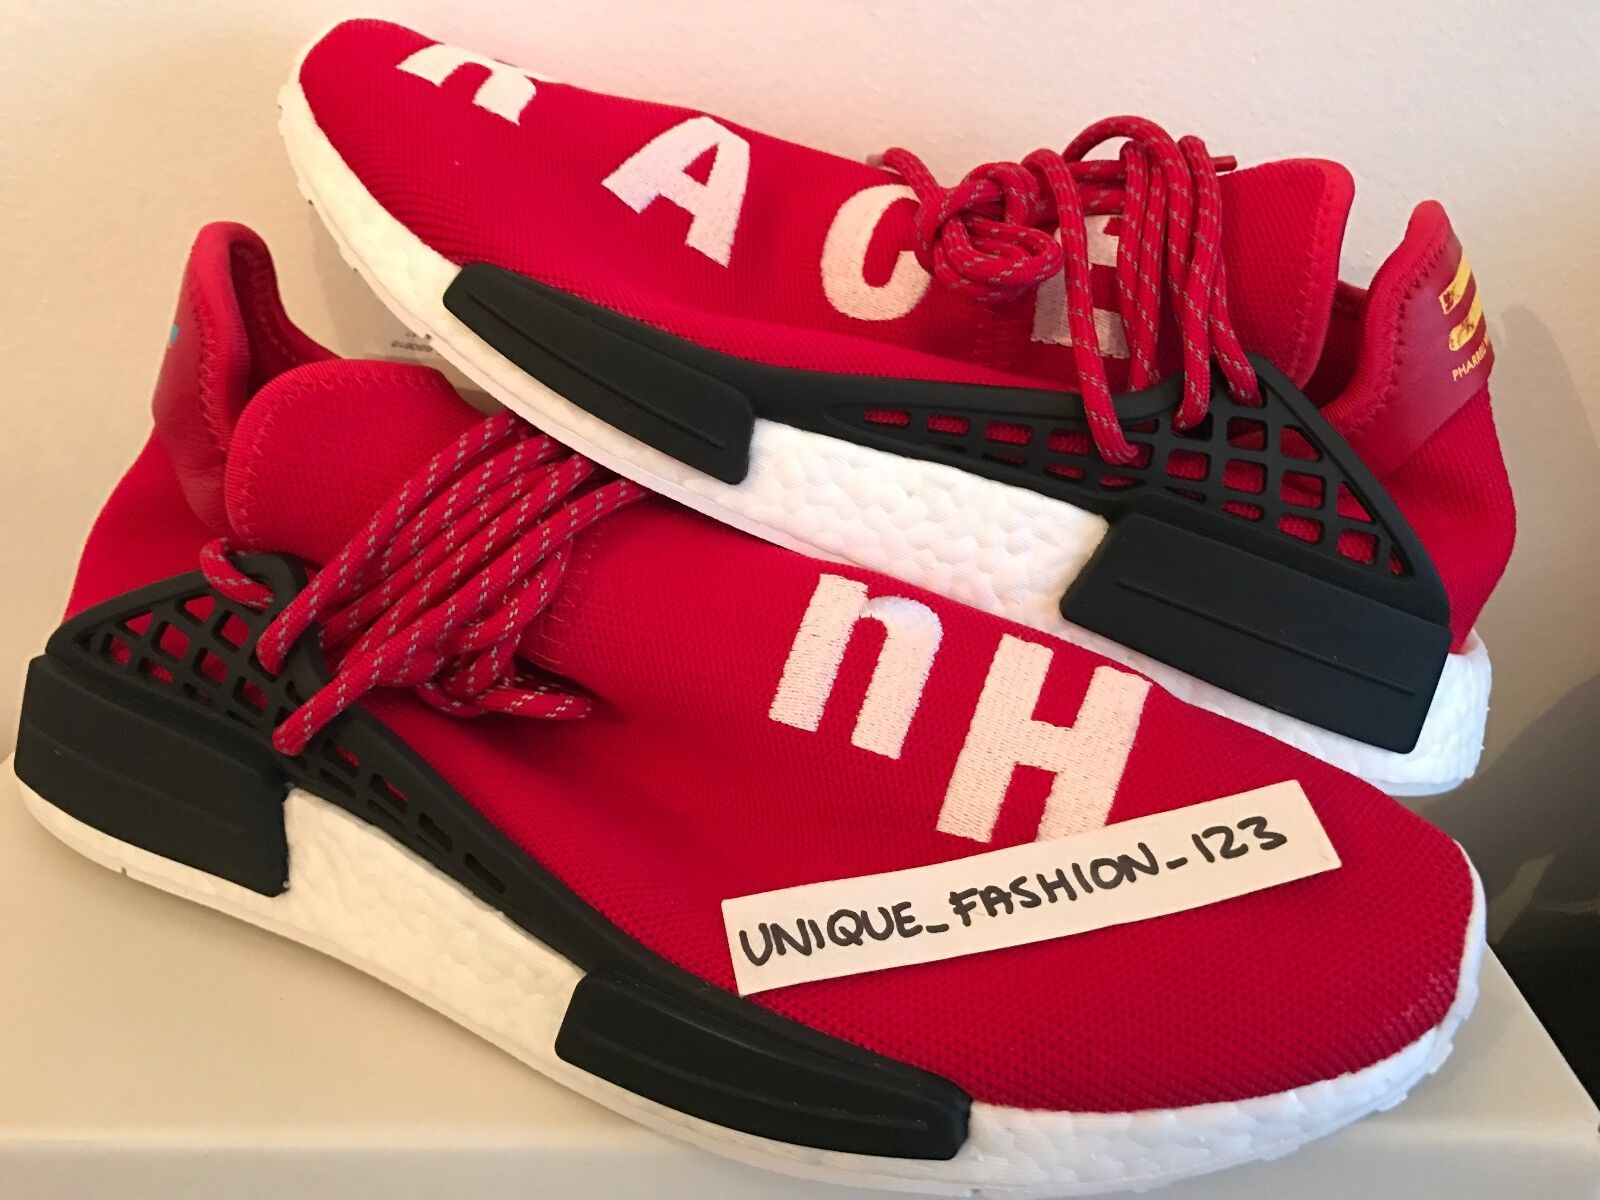 ADIDAS NMD HUMAN RACE HU PHARRELL PW5 6 7 8 9 10 11 SCARLET rouge blanc  BOOST